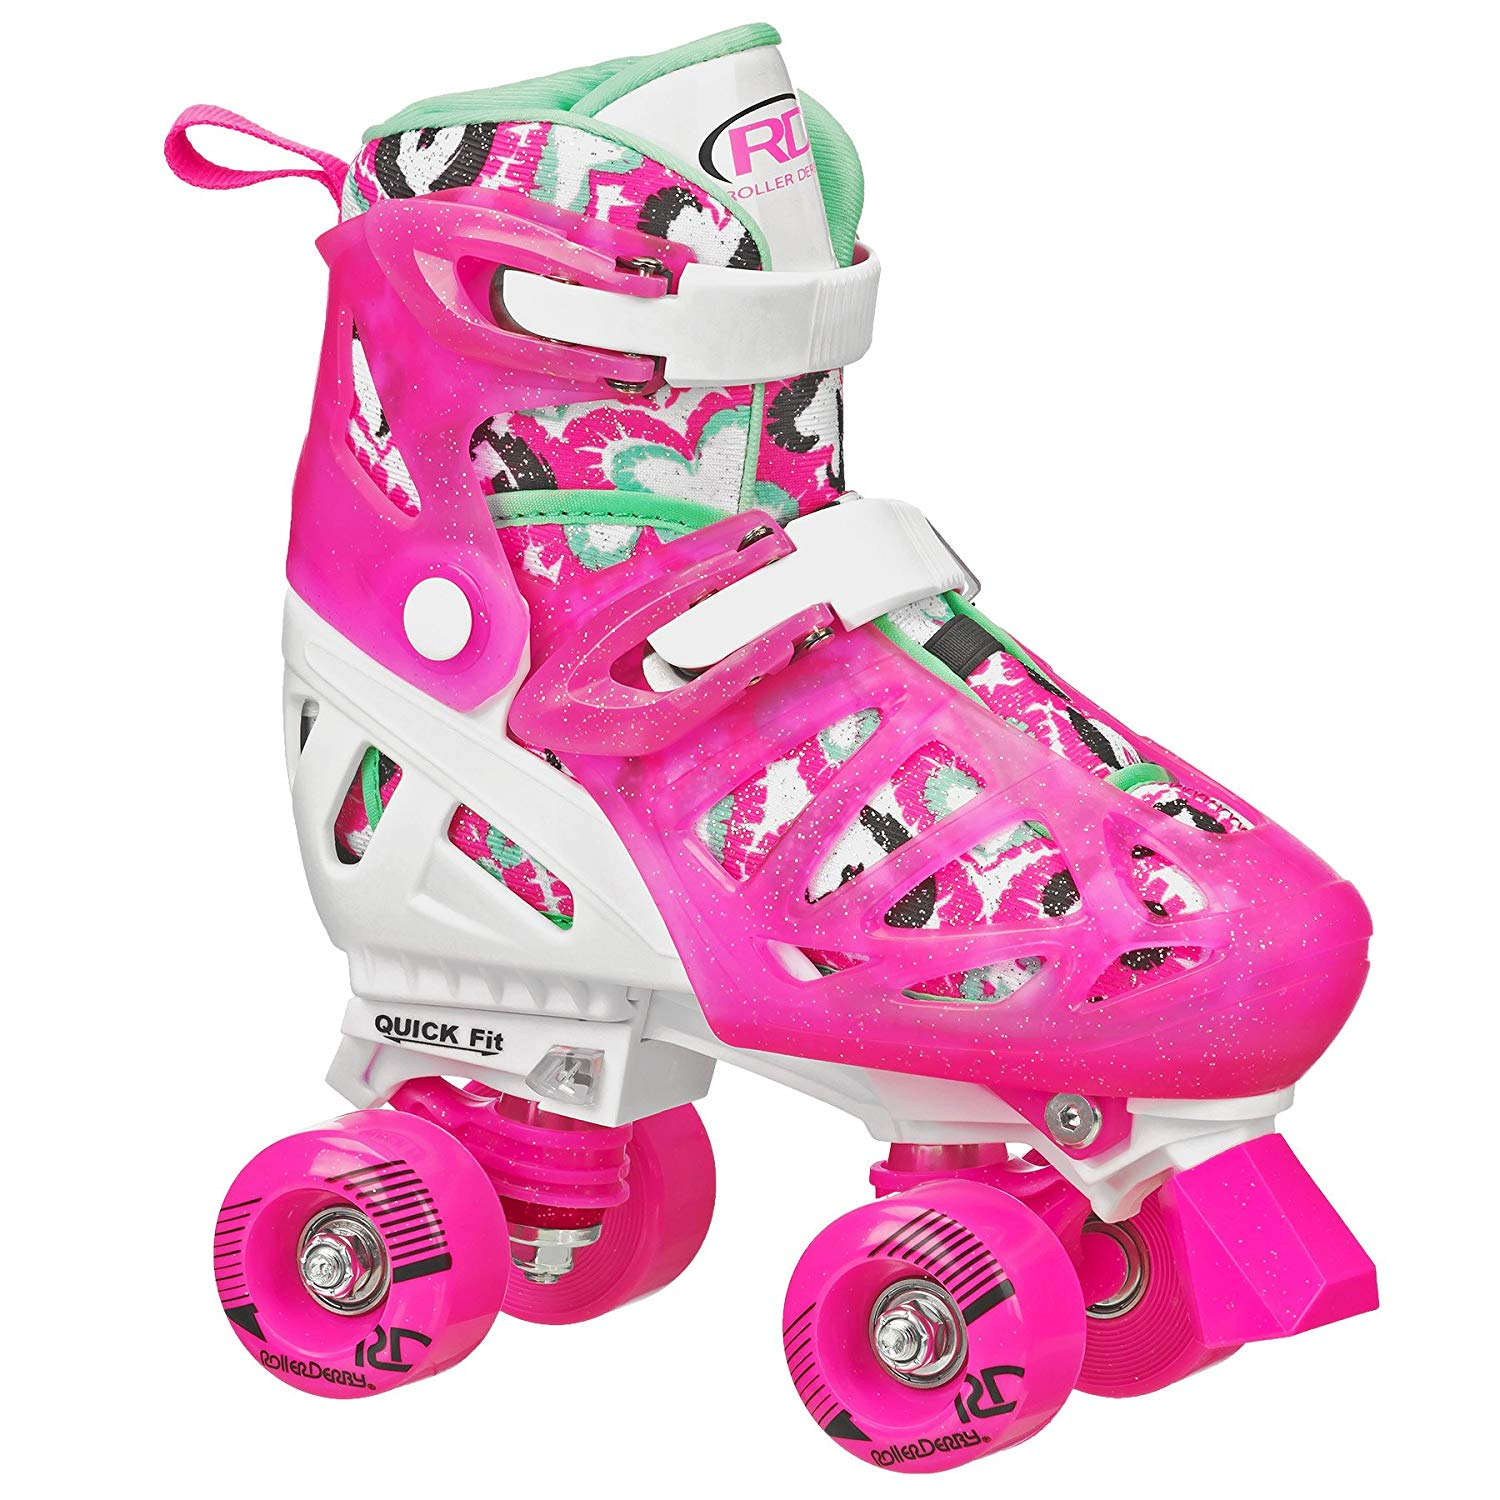 Roller Derby Girl's Trac Star Adjustable Roller Skate | Adjustable Roller Skate Shoes for kids